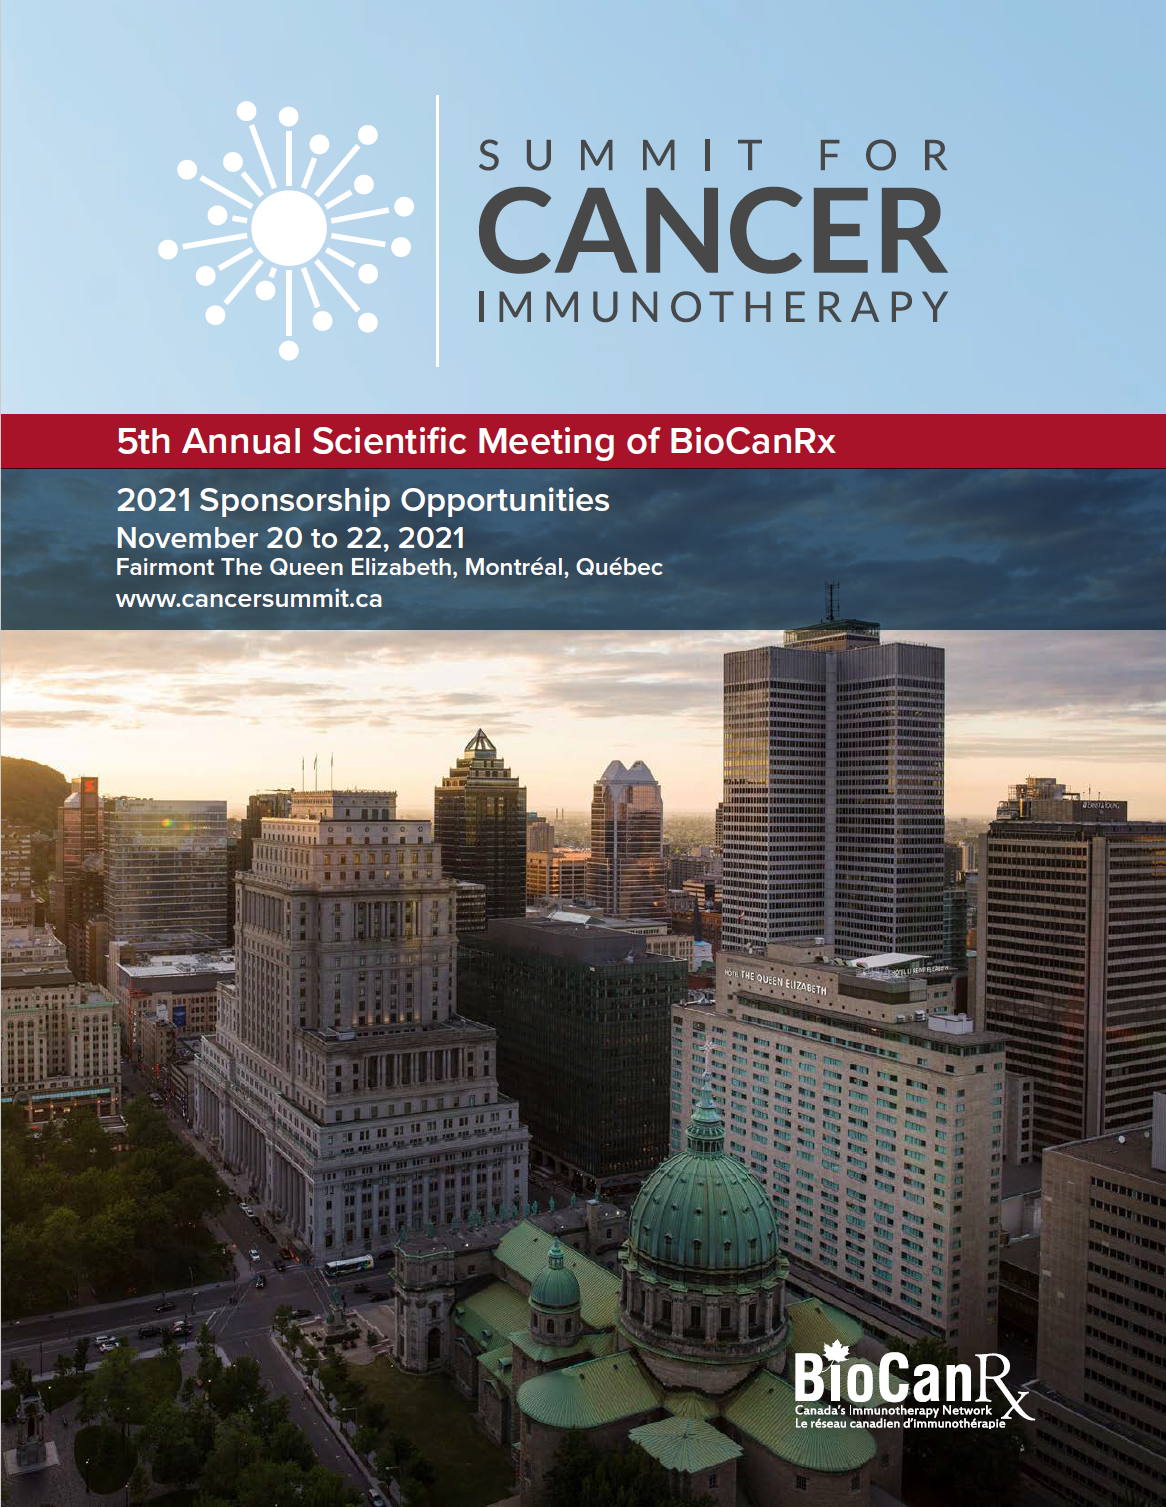 Summit for Cancer Immunotherapy sponsorship opportunities